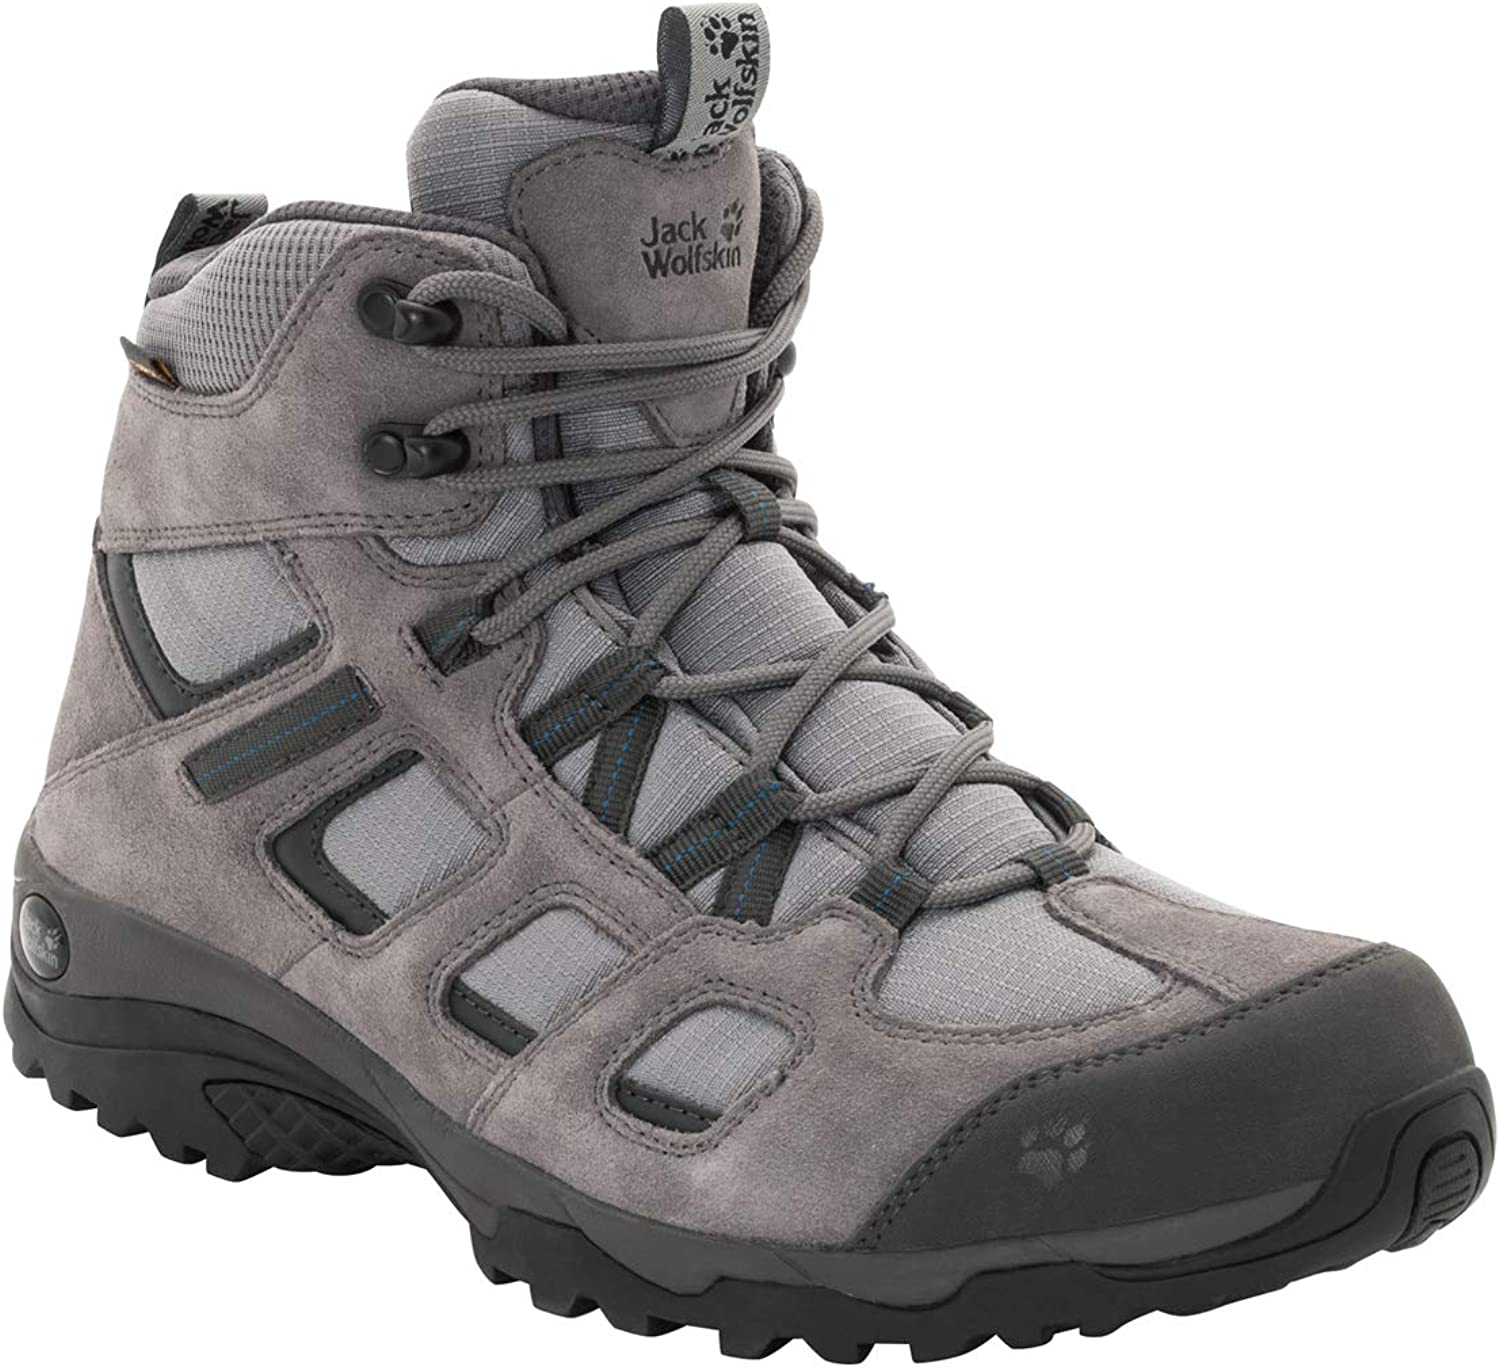 Jack Wolfskin Men s Vojo Mid Hiking Boot, tarmac grey, US Men s 9.5 D US